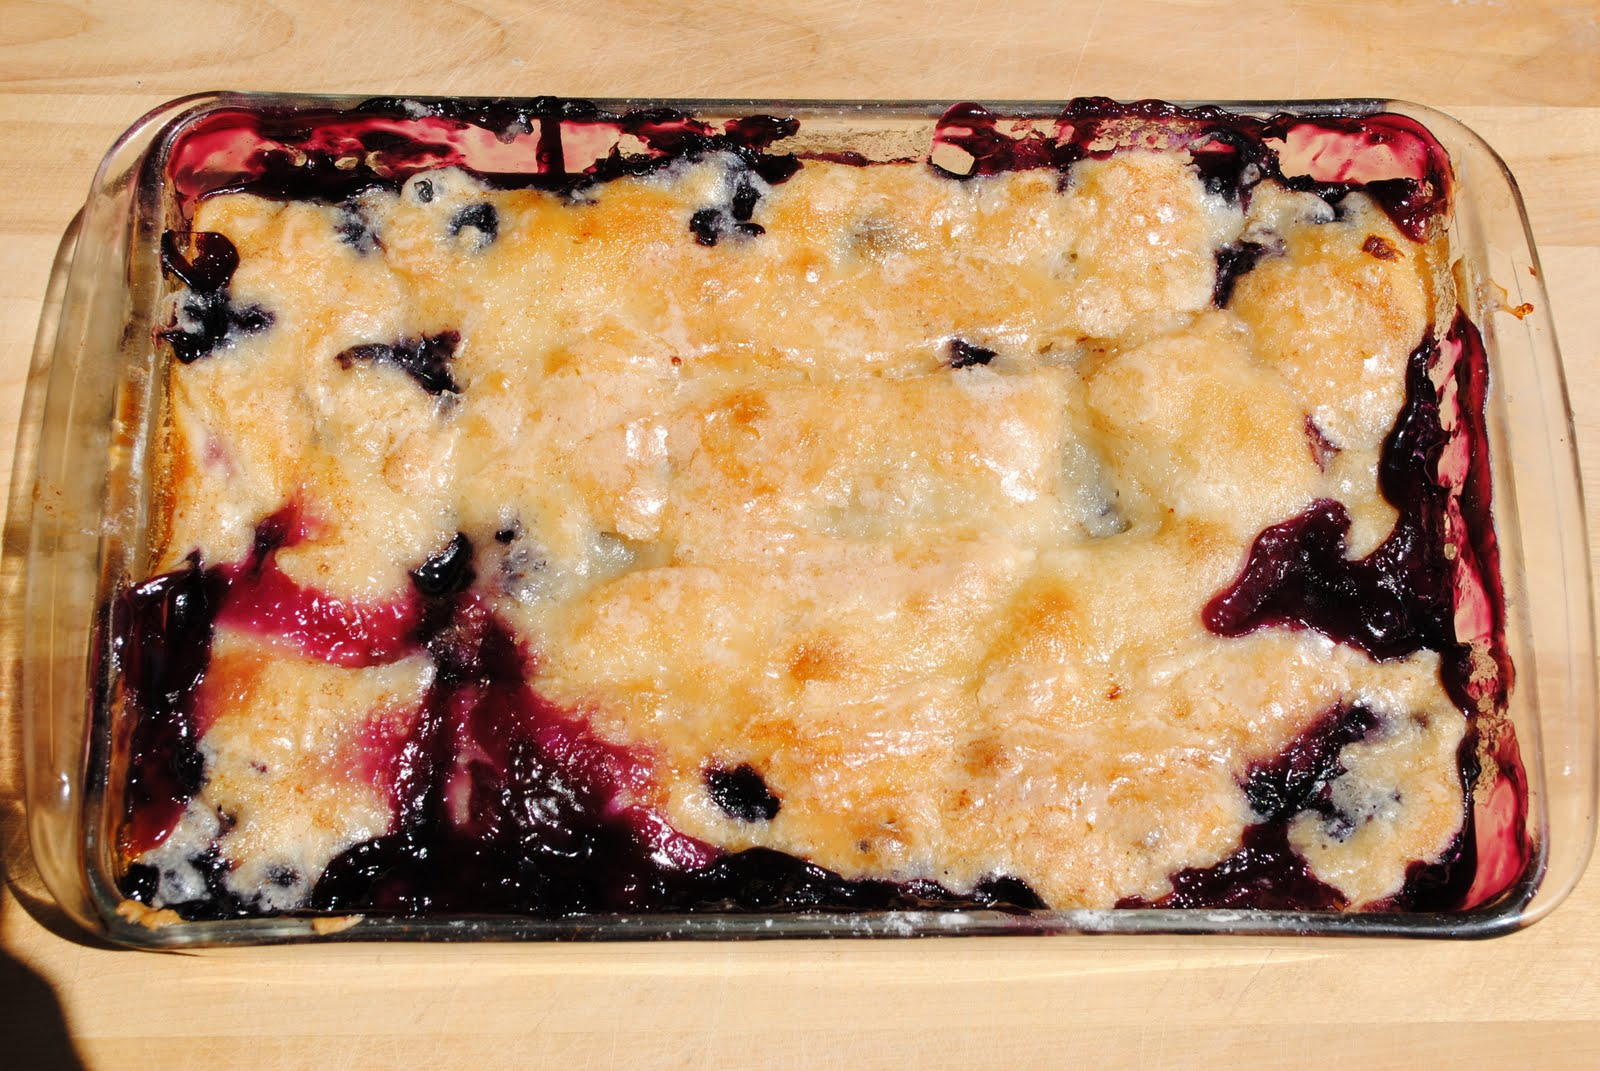 ... with blueberry buttercream frosting blackberry cobbler rhubarb cobbler